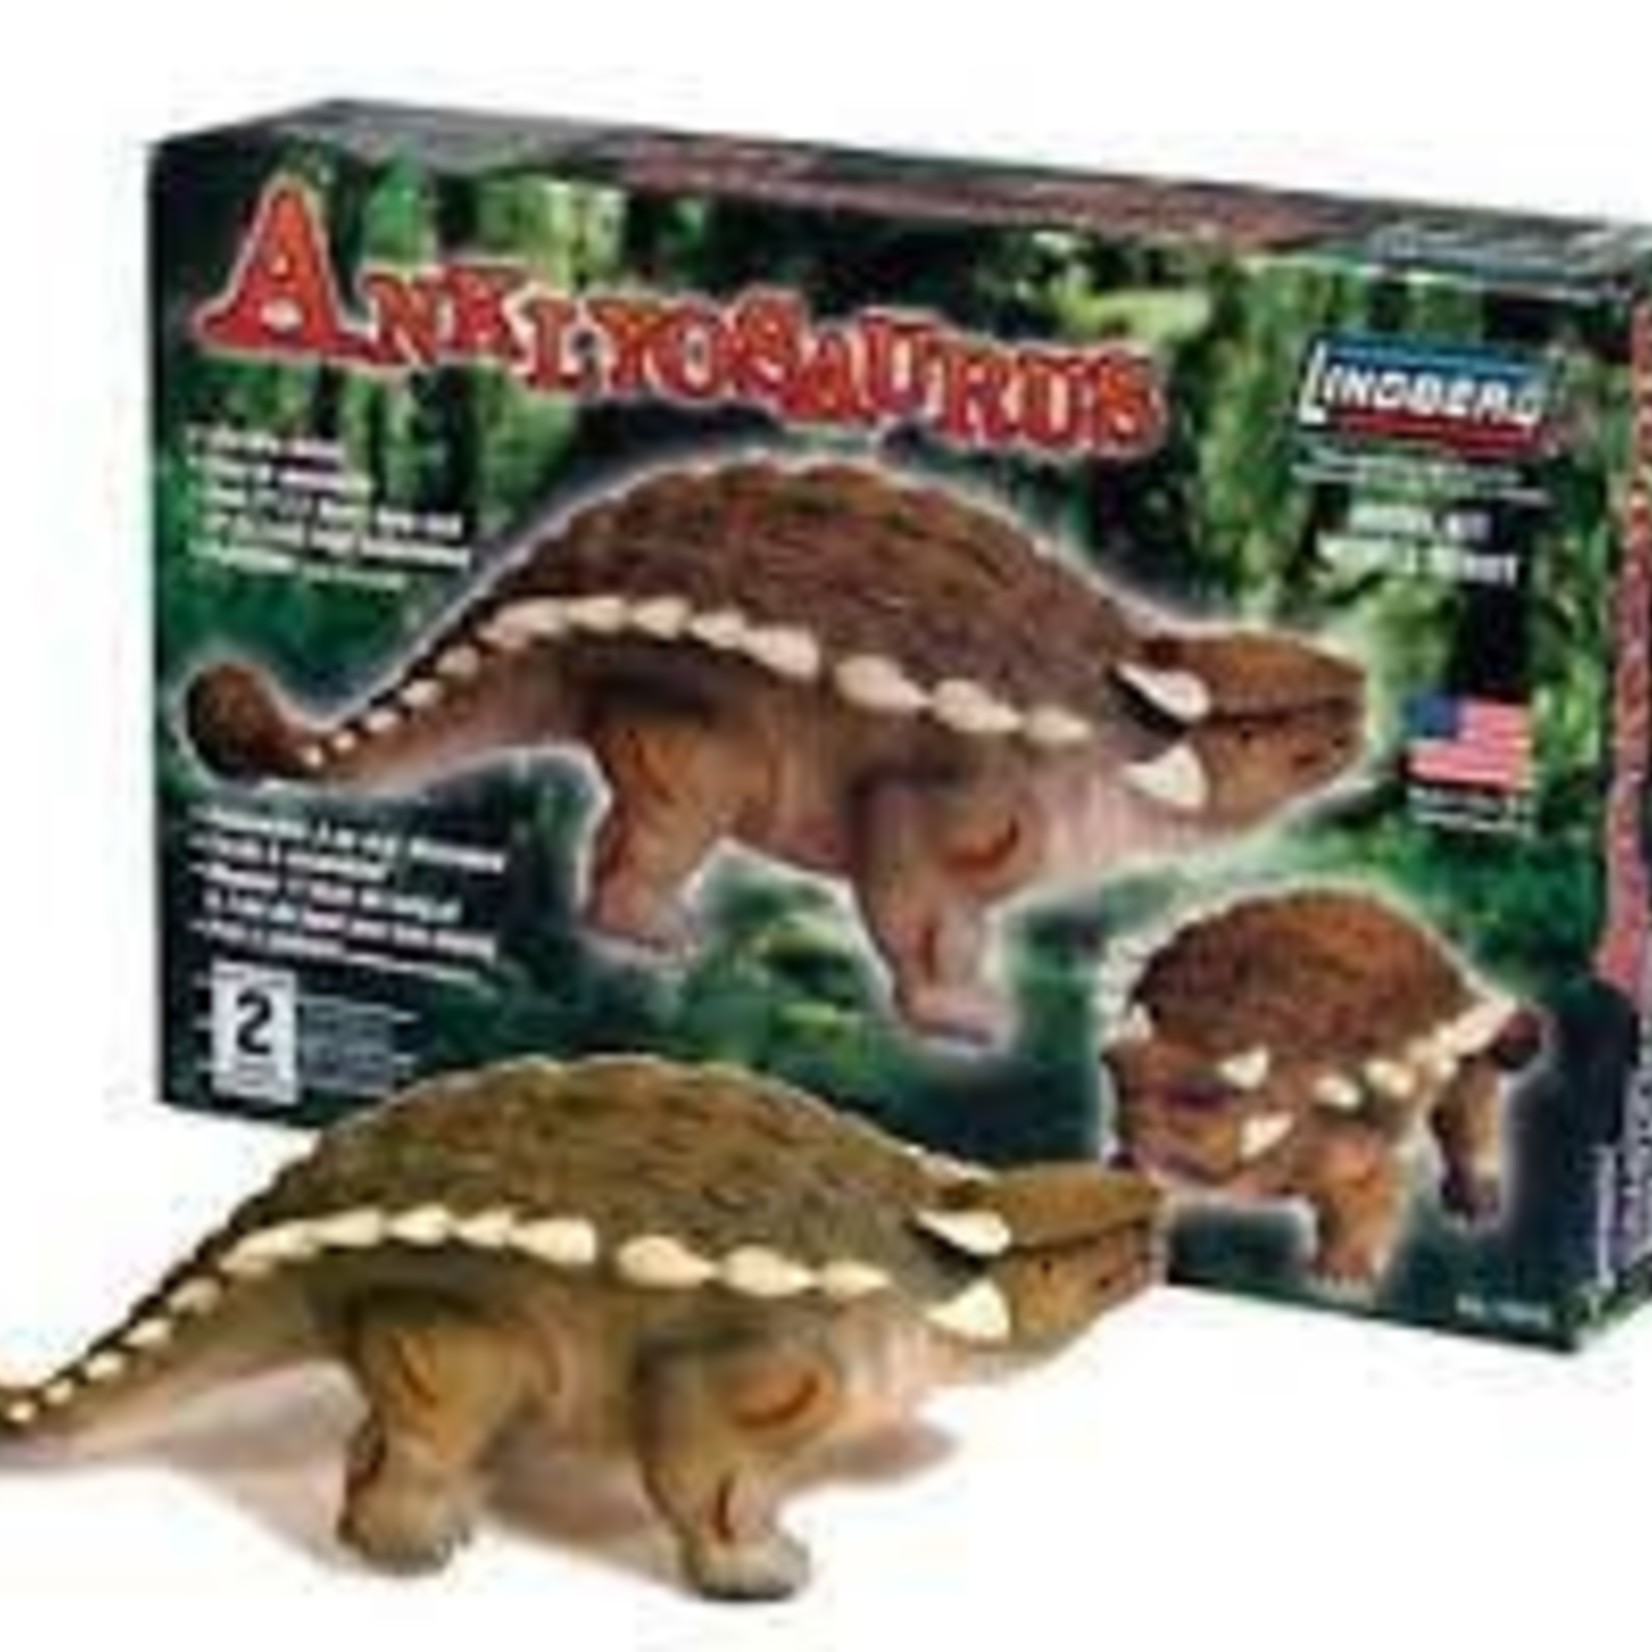 Anklylosarus by Lindberg